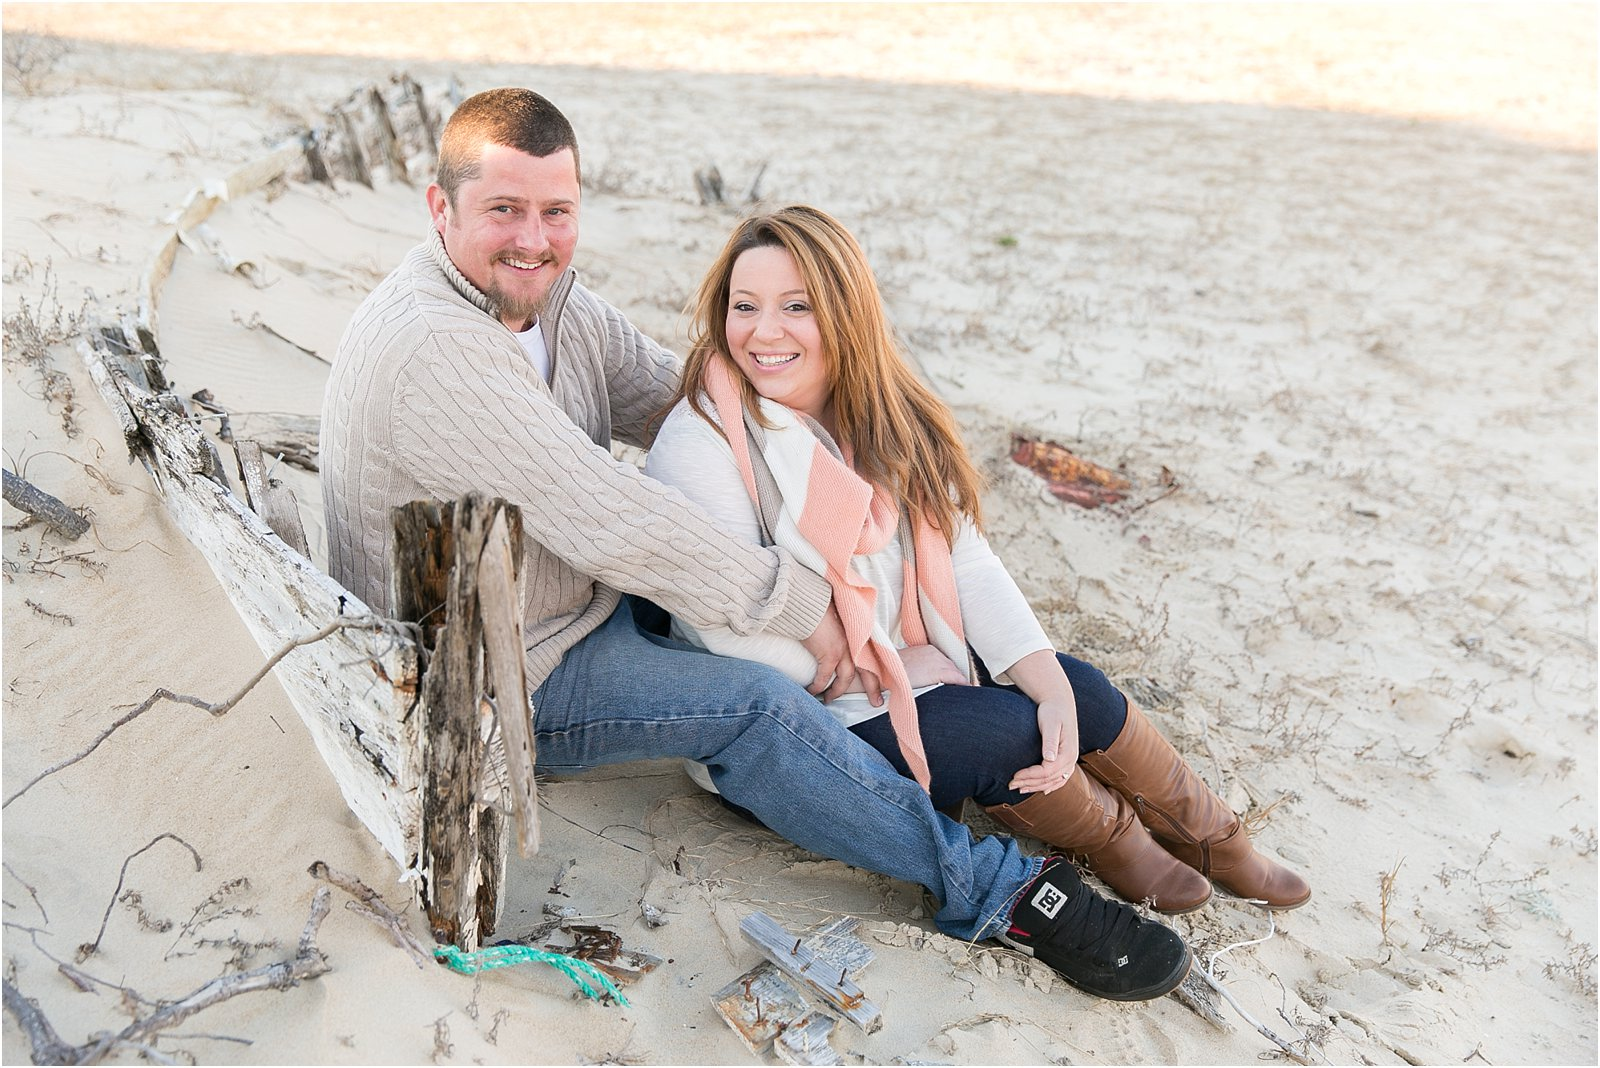 jessica_ryan_photography_pumpkin_patch_engagement_portraits_fall_october_engagements_virginia_beach_chesapeake_0311